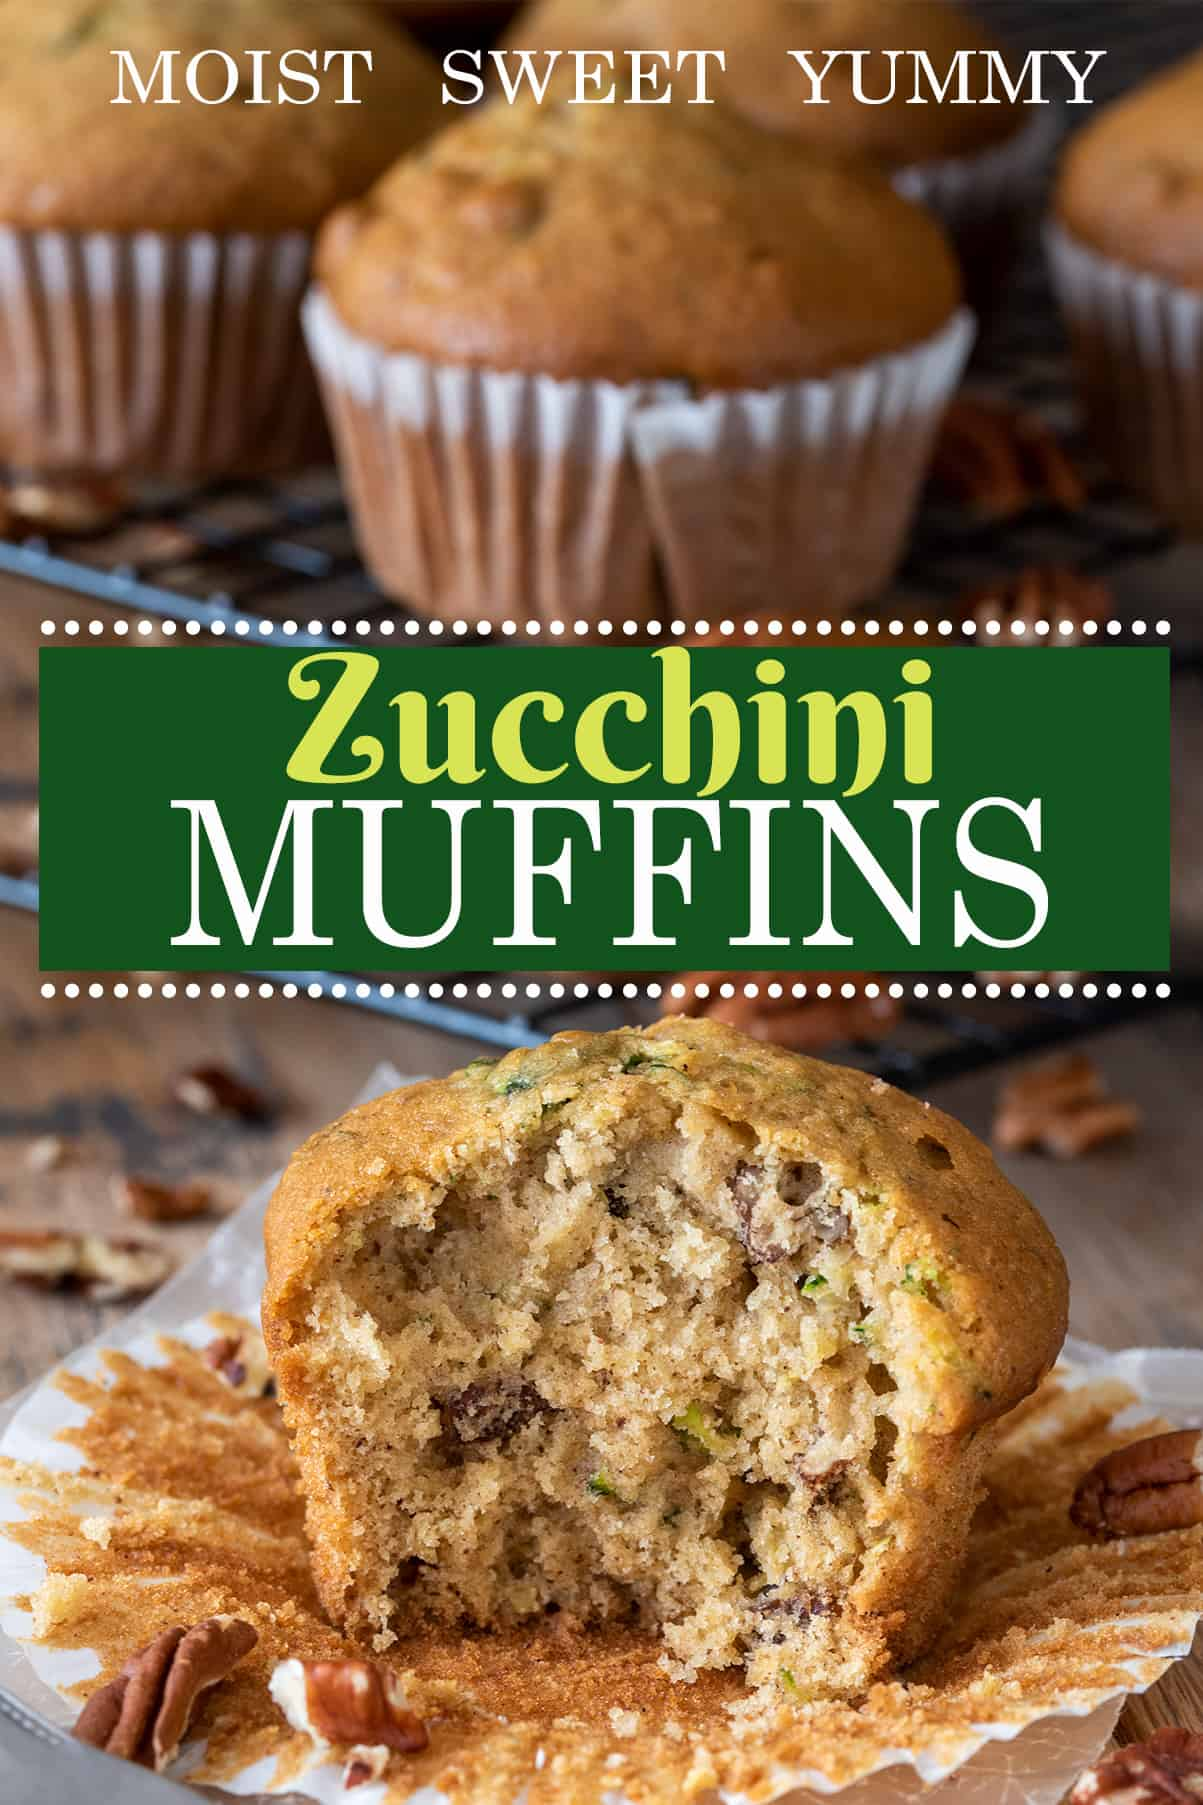 Healthy zucchini muffin in a paper wrapper with more muffins in the background. Text label for recipe.